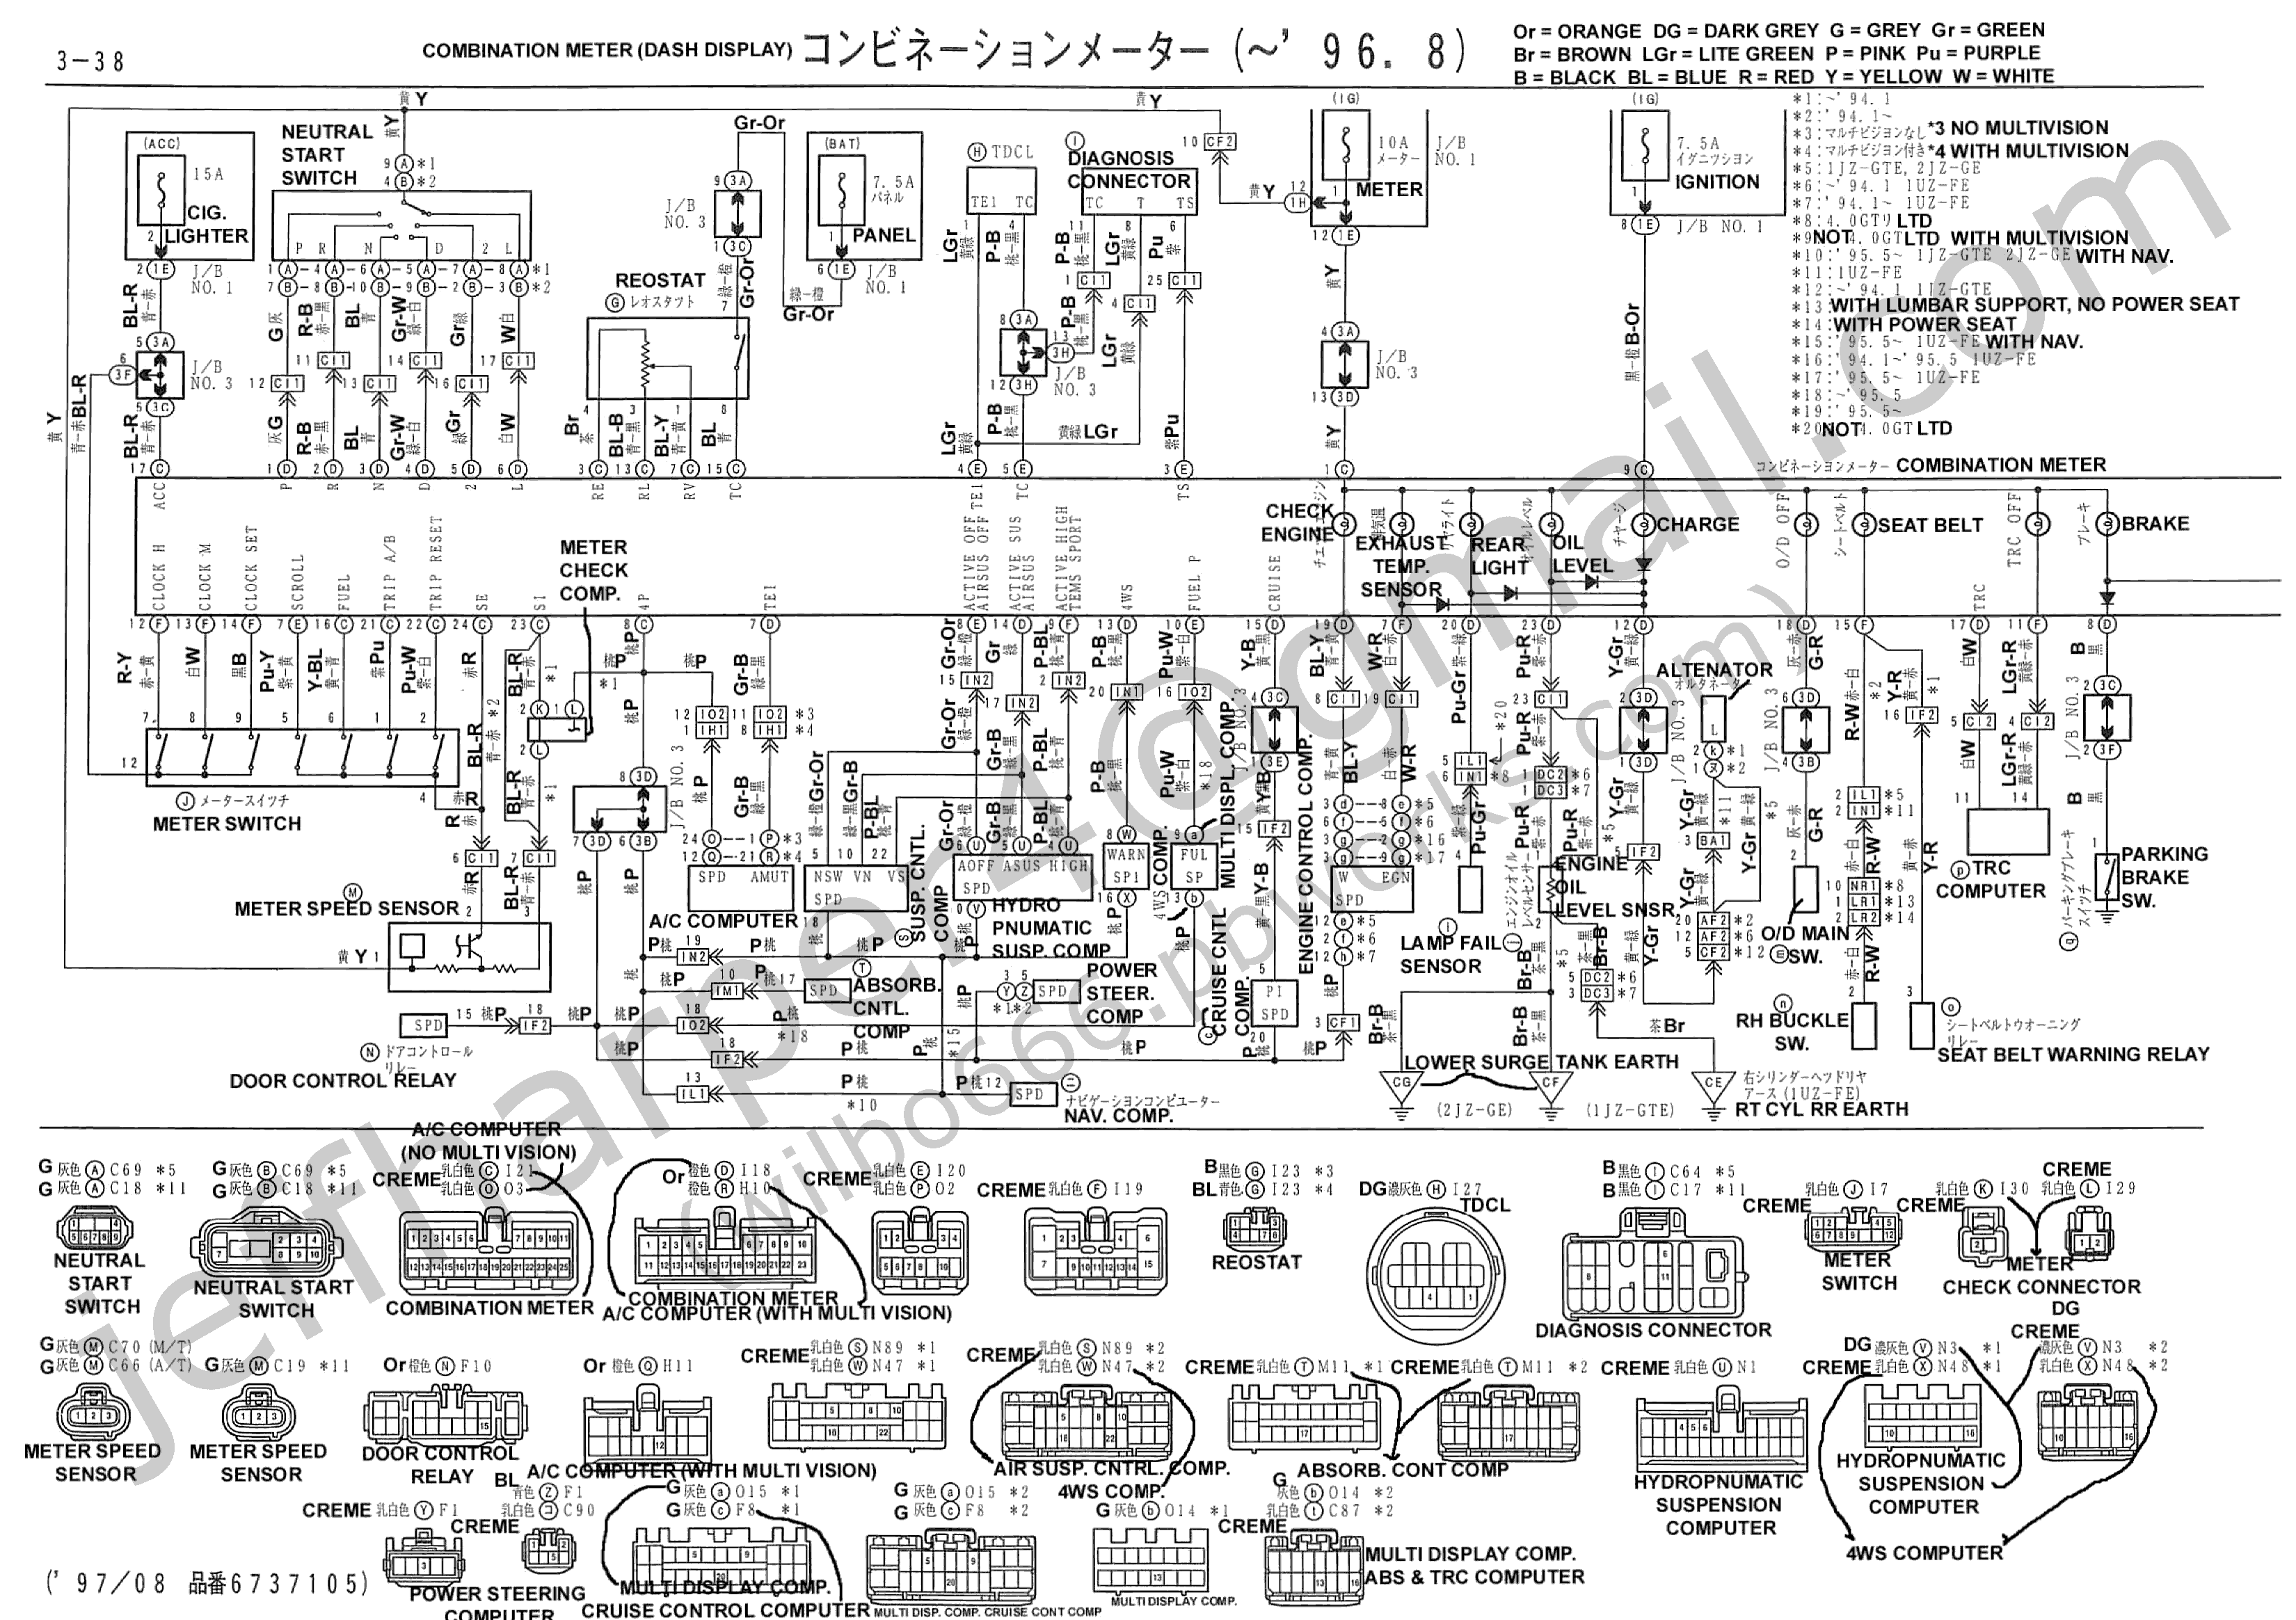 2007 Hummer H3 Radio Wiring Diagram : 35 Wiring Diagram